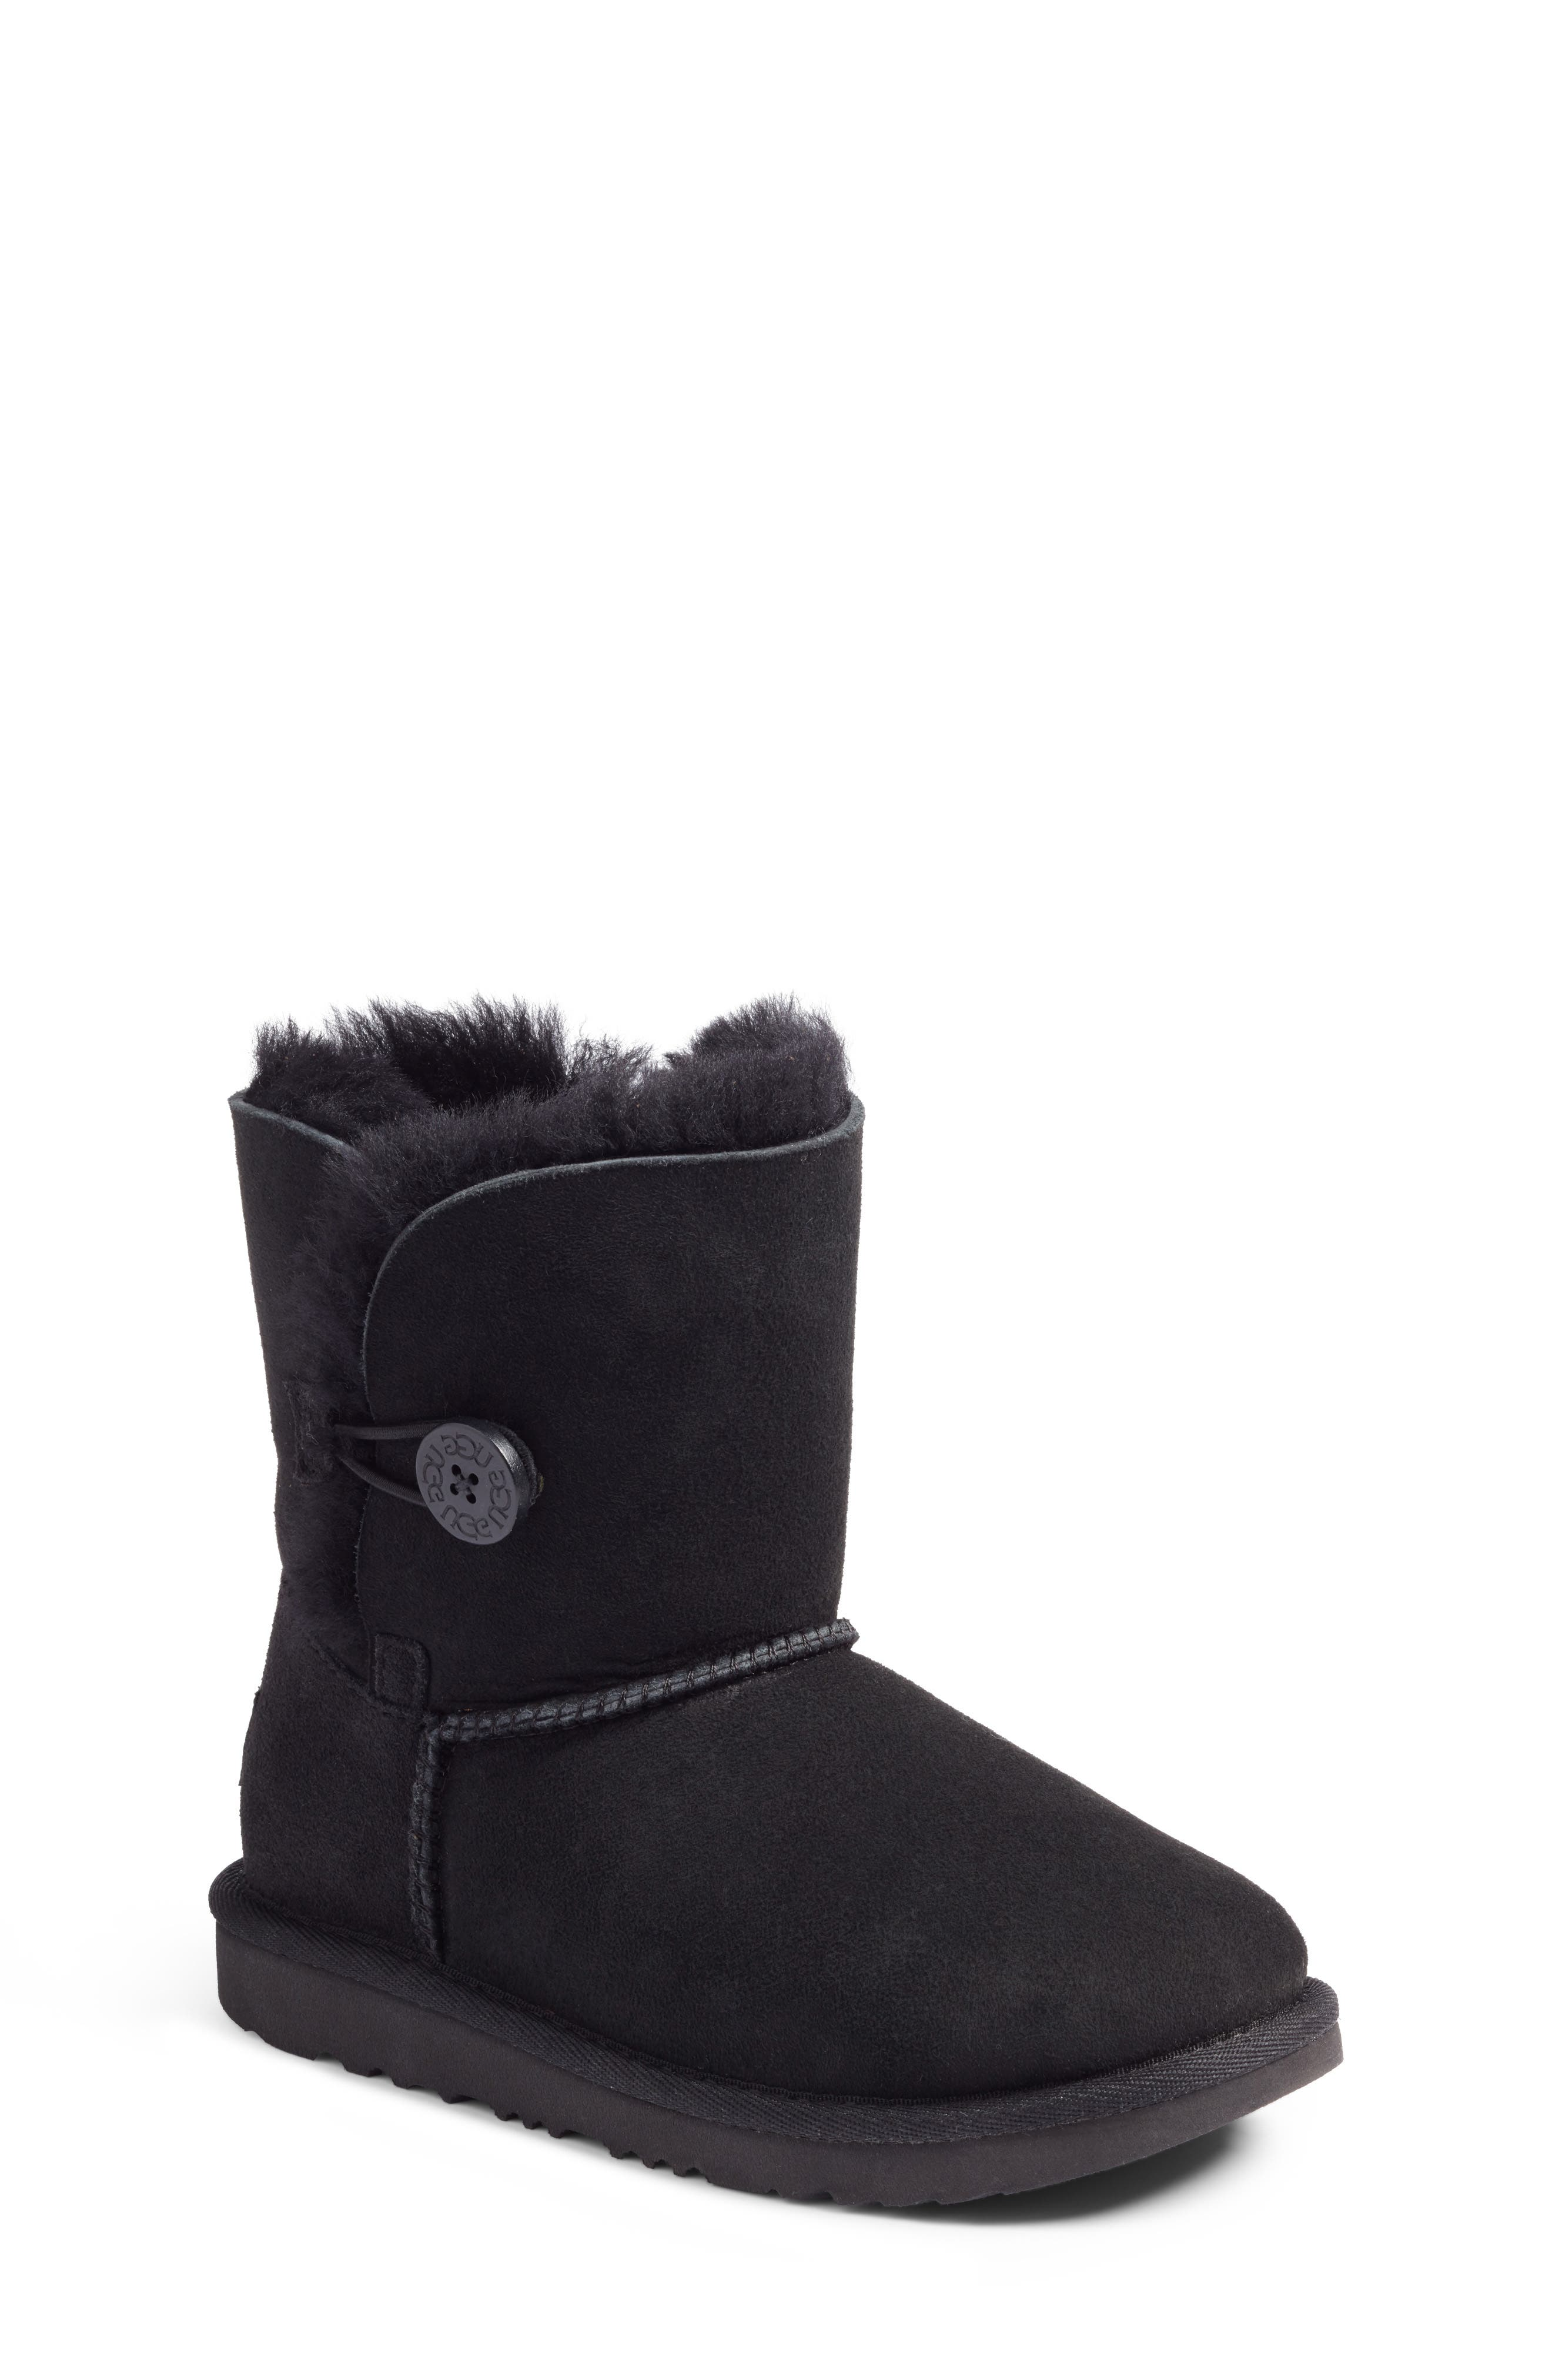 Bailey Button II Water Resistant Genuine Shearling Boot,                         Main,                         color, BLACK SUEDE